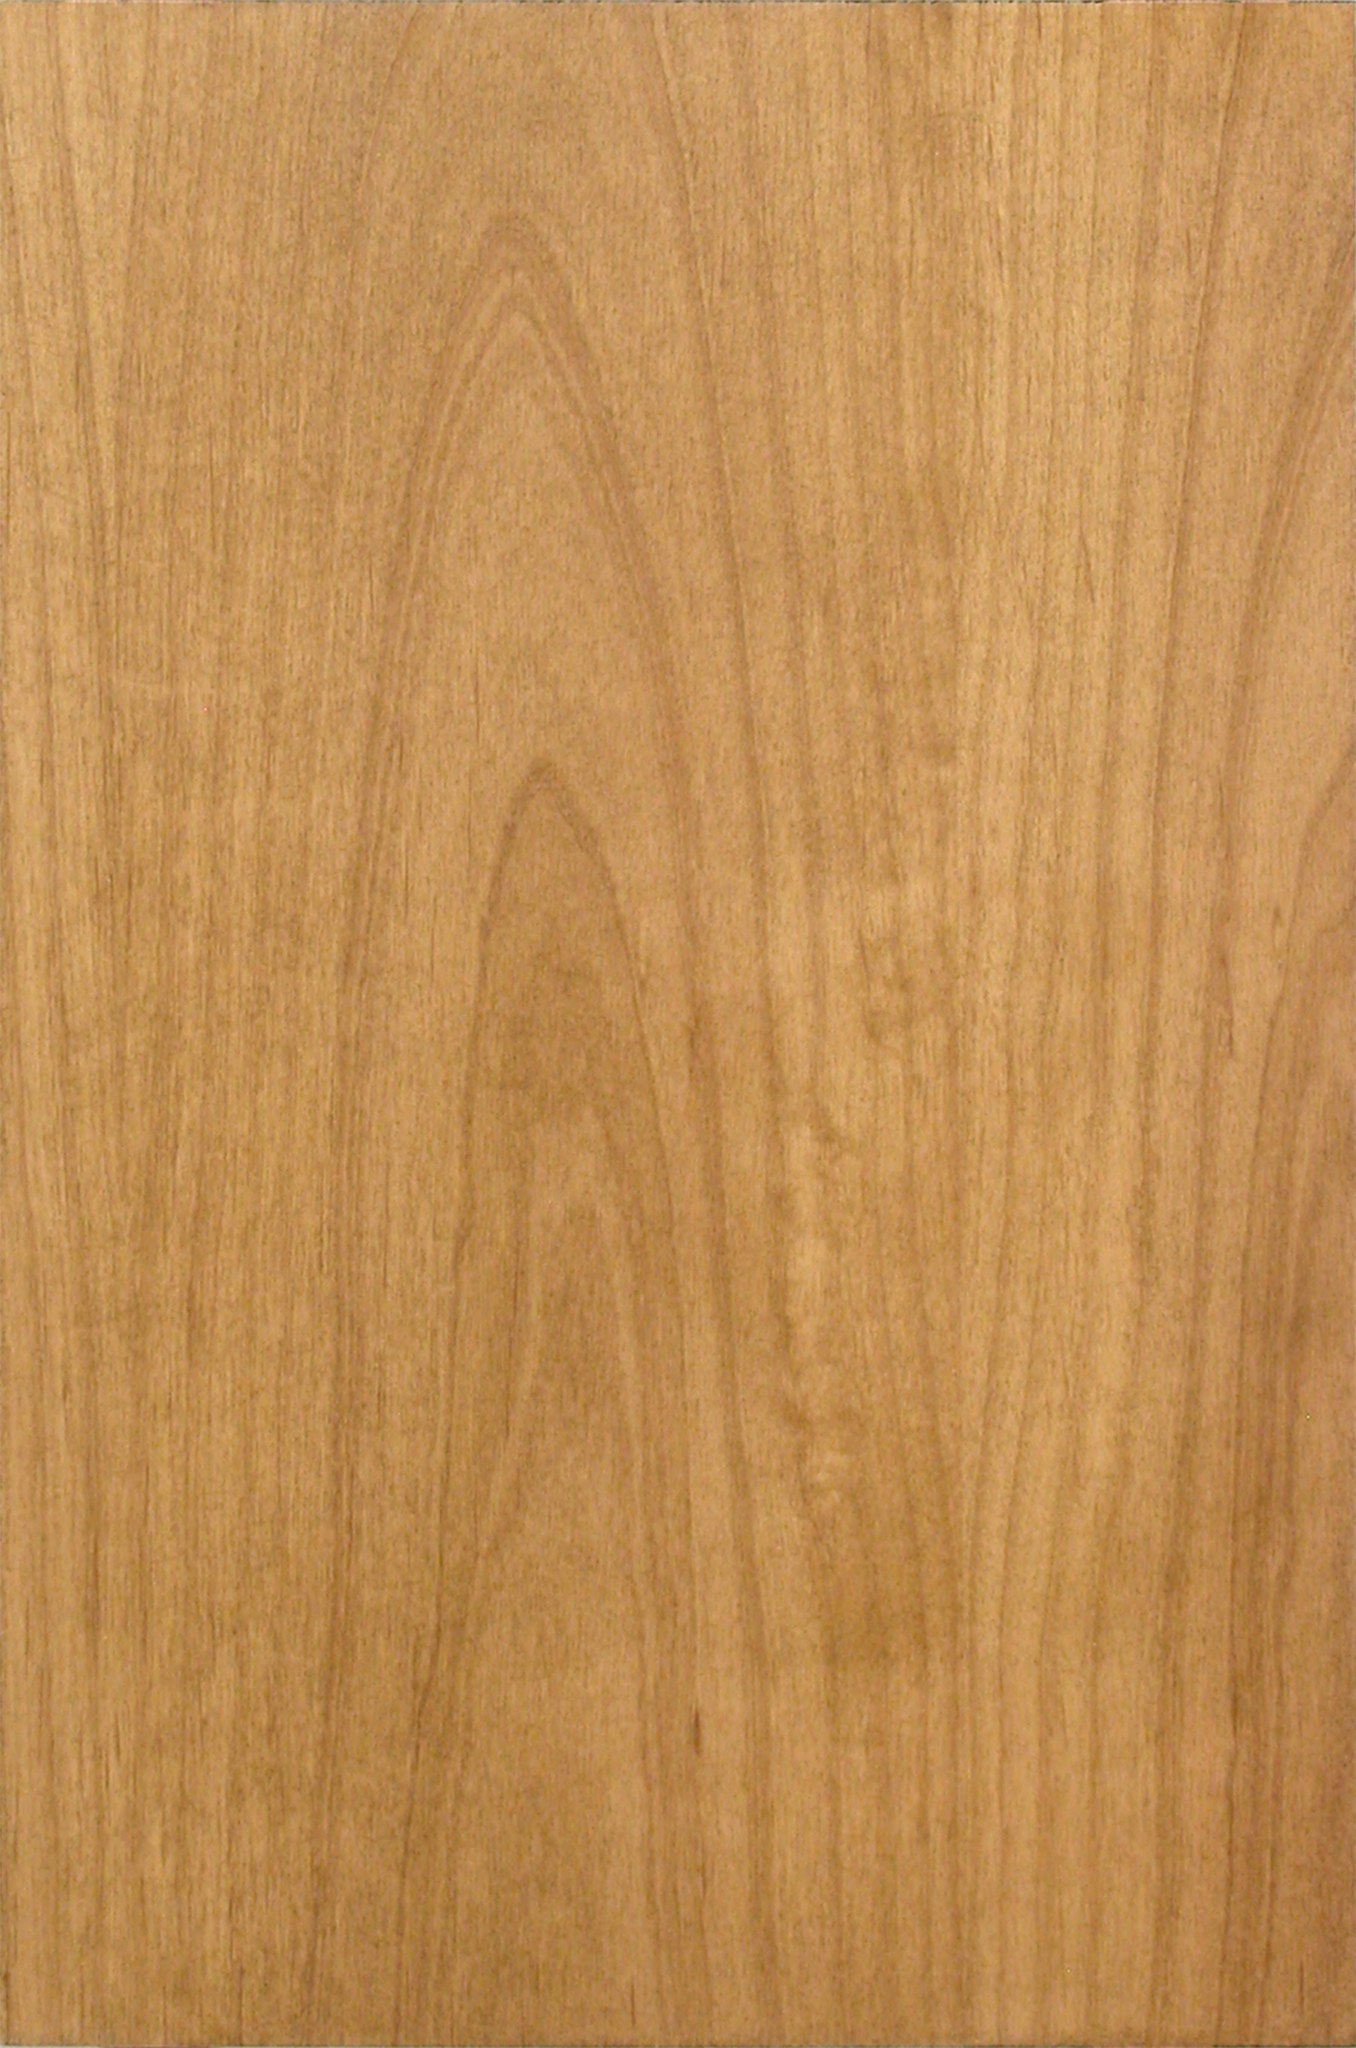 Veneer Door, Edgeband, then veneered